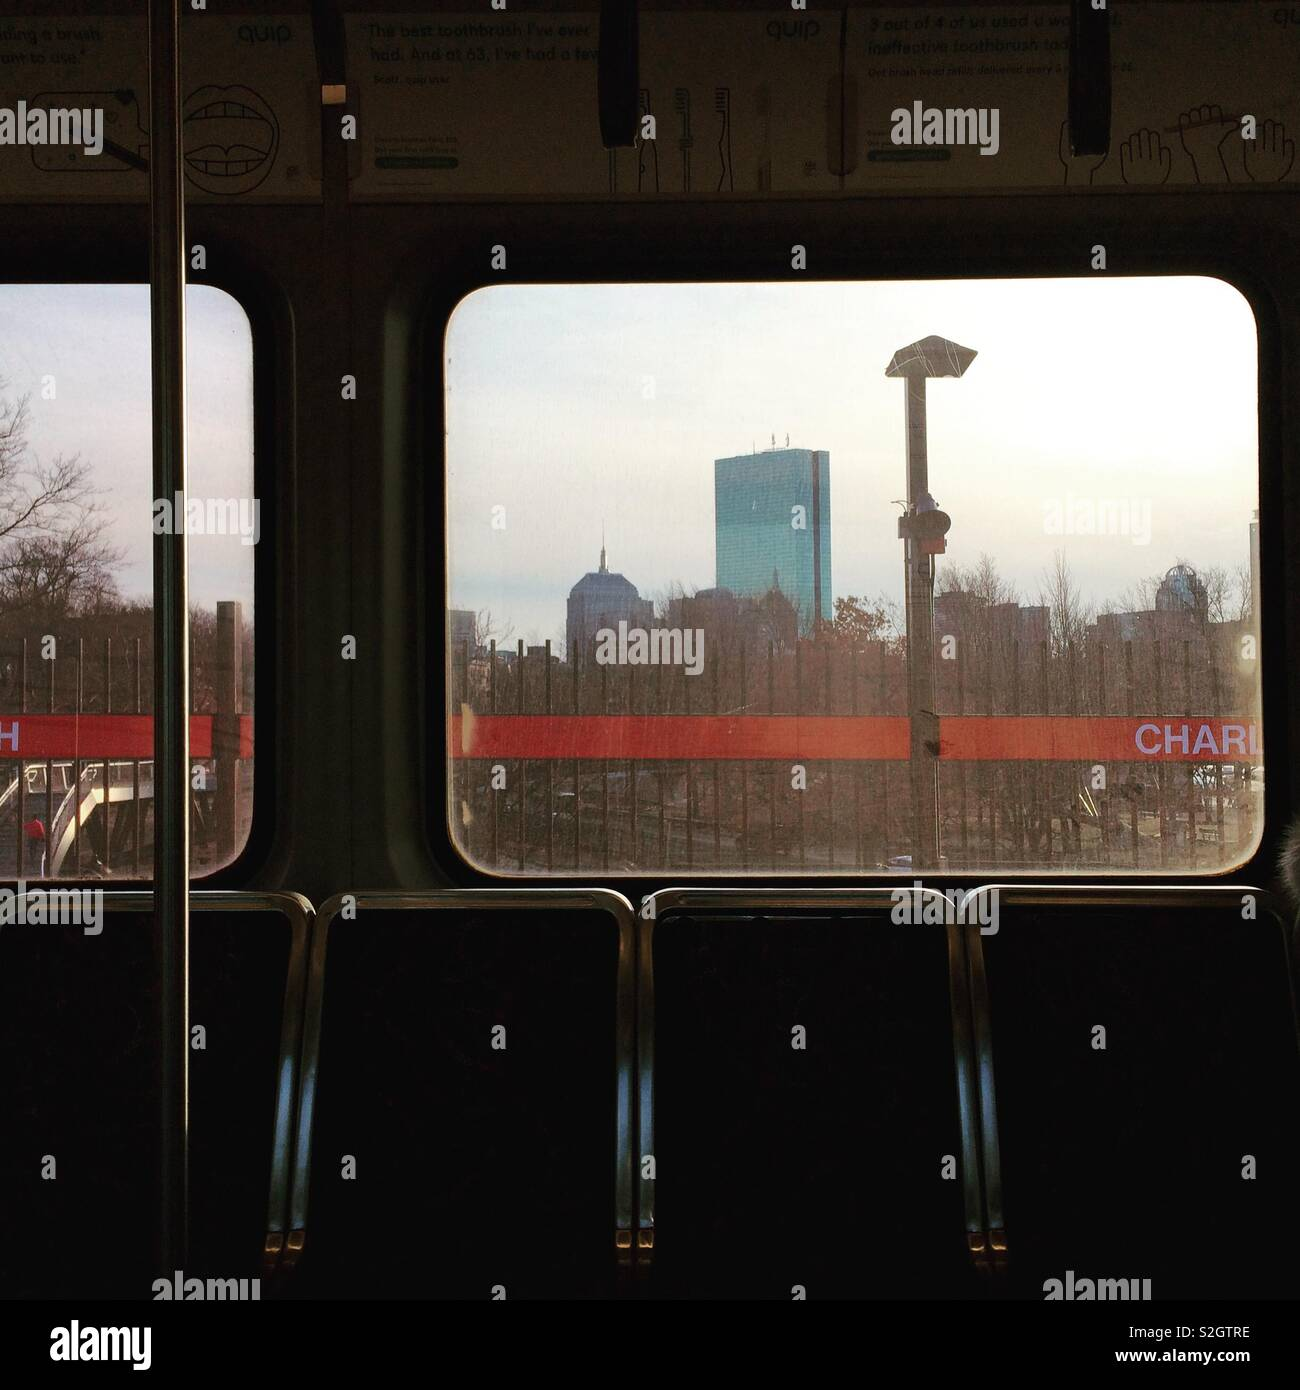 Skyscrapers seem through subway car windows, Boston, Massachusetts, United States - Stock Image